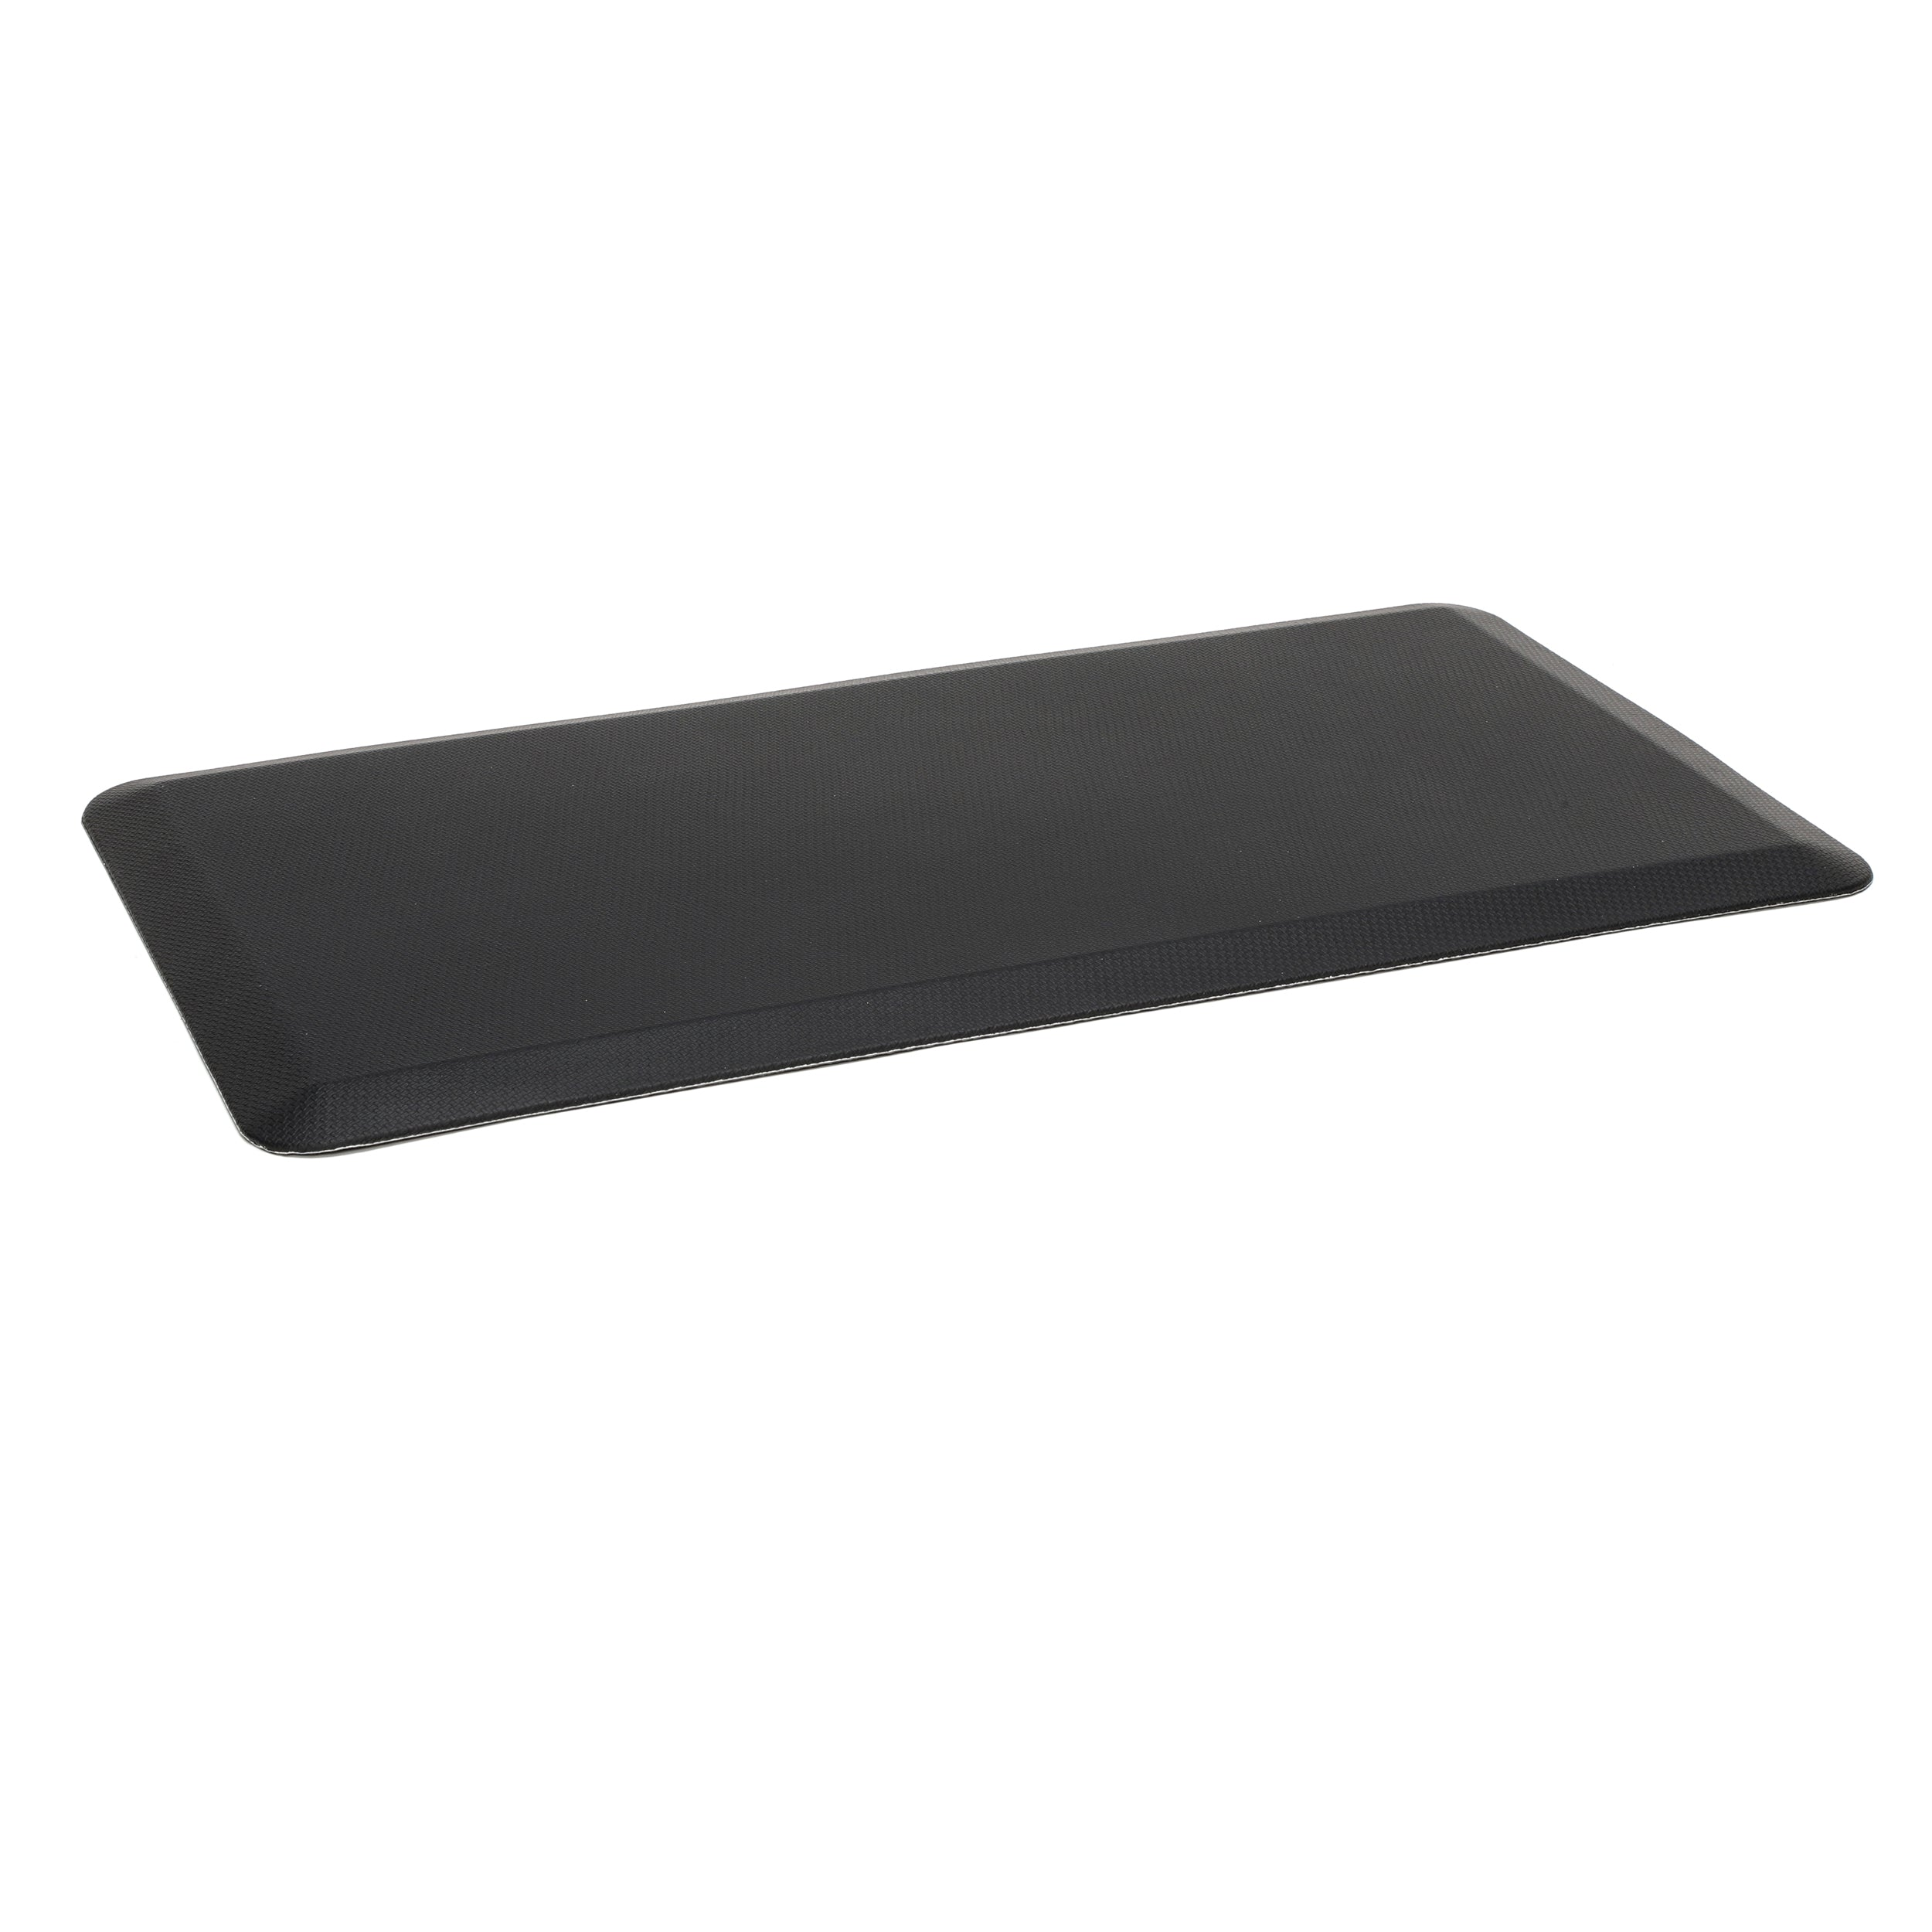 "Model ESS-8820 Essentials By OFM 3/4"" Anti-Fatigue Comfort Mat"